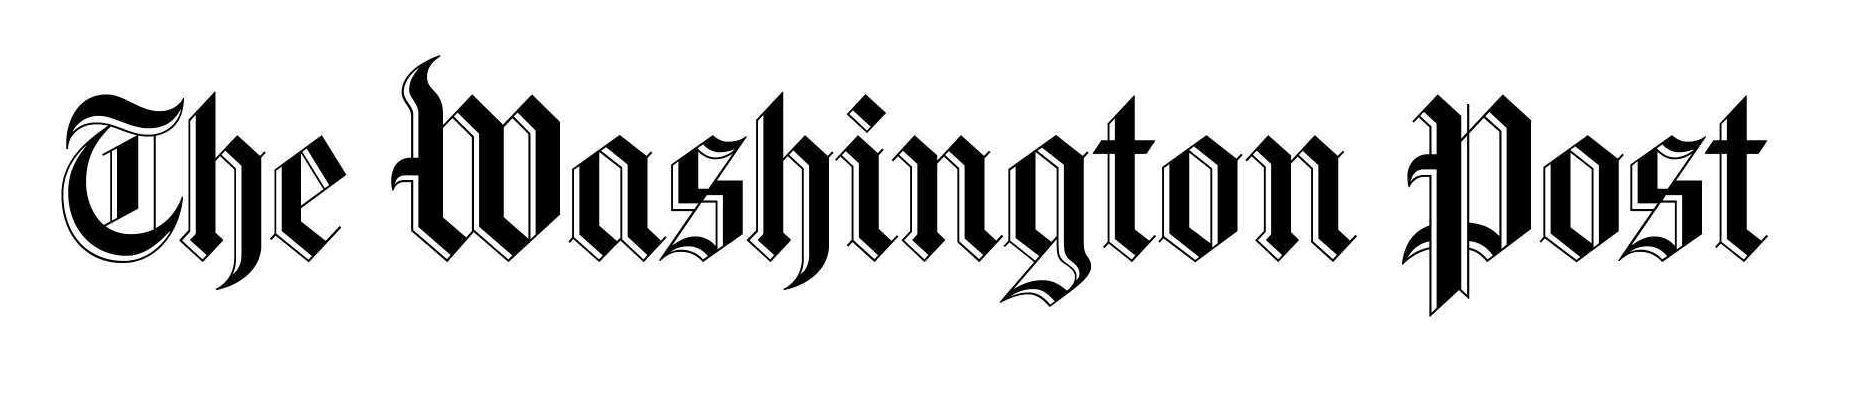 washington-post-masthead.jpg